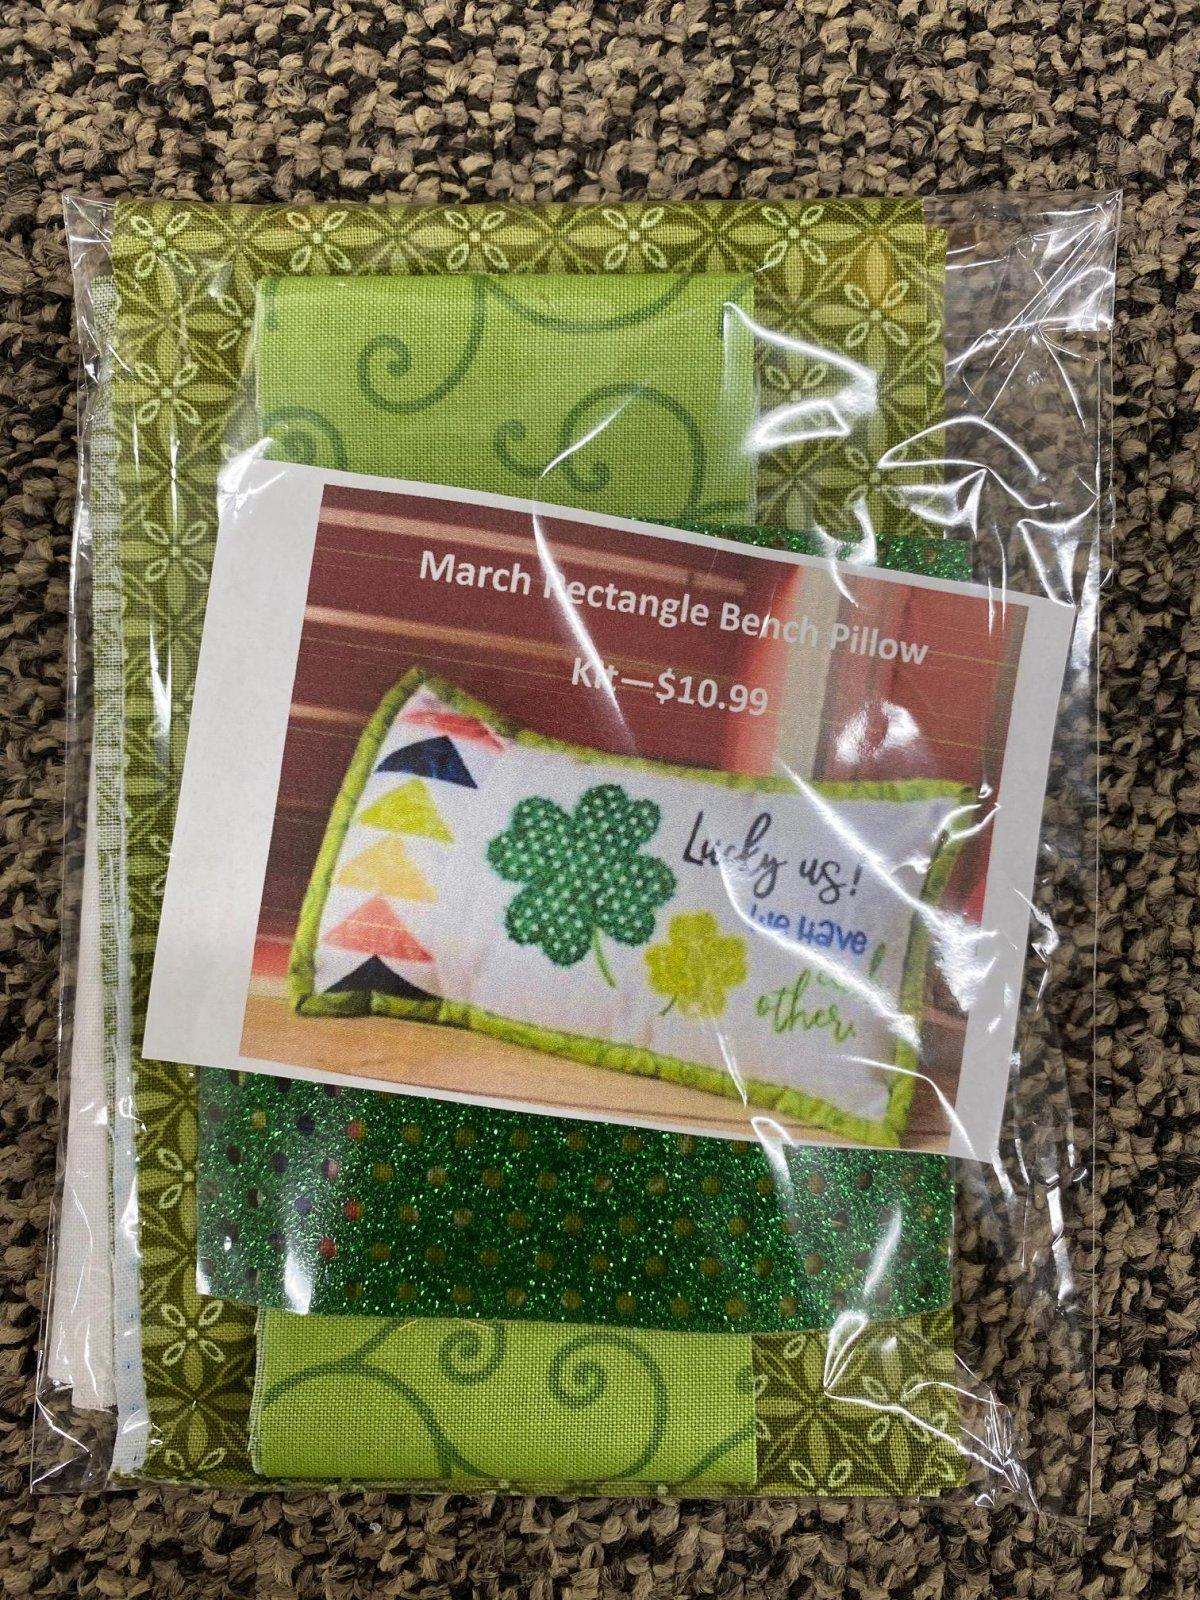 March Rectangle Bench Buddy Fabric Kit